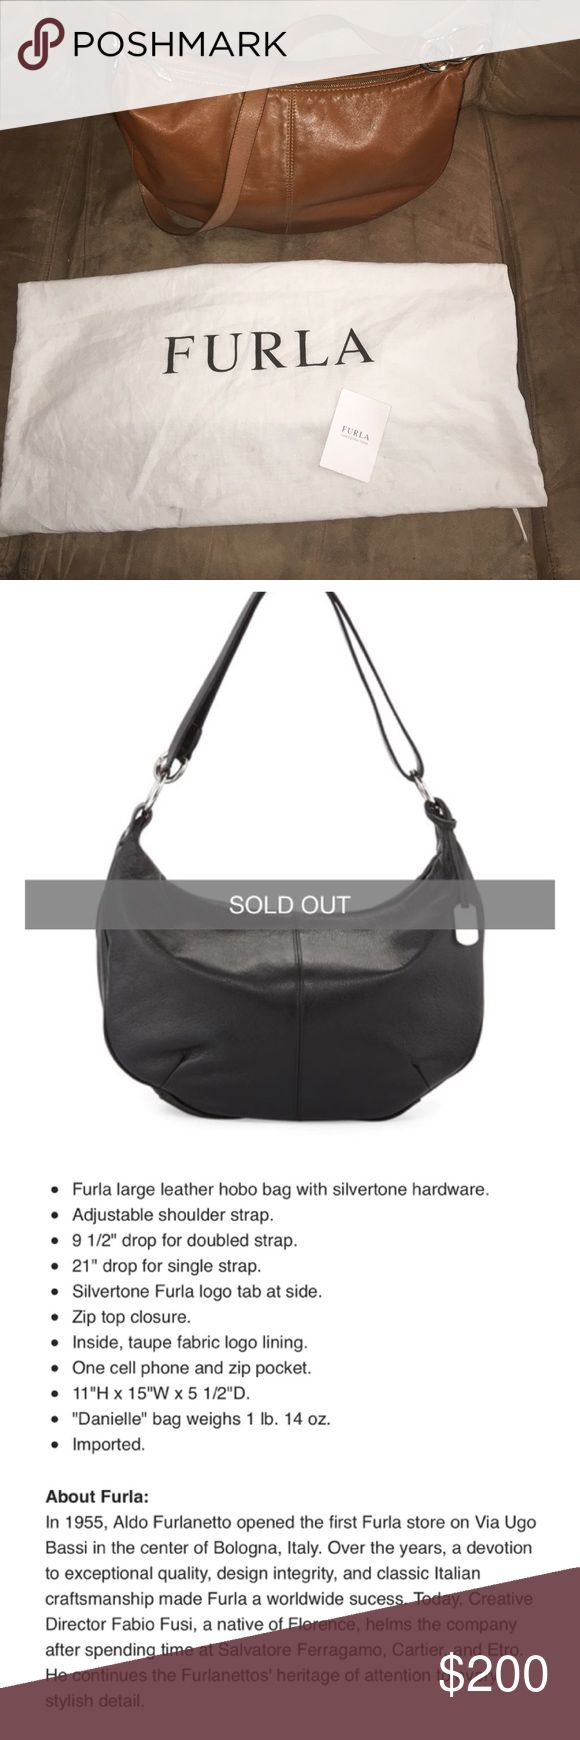 Furla Hobo Handbag Furla Hobo Large Handbag Caramel..... This bag is sold out online at Nieman Marcus Furla Accessories